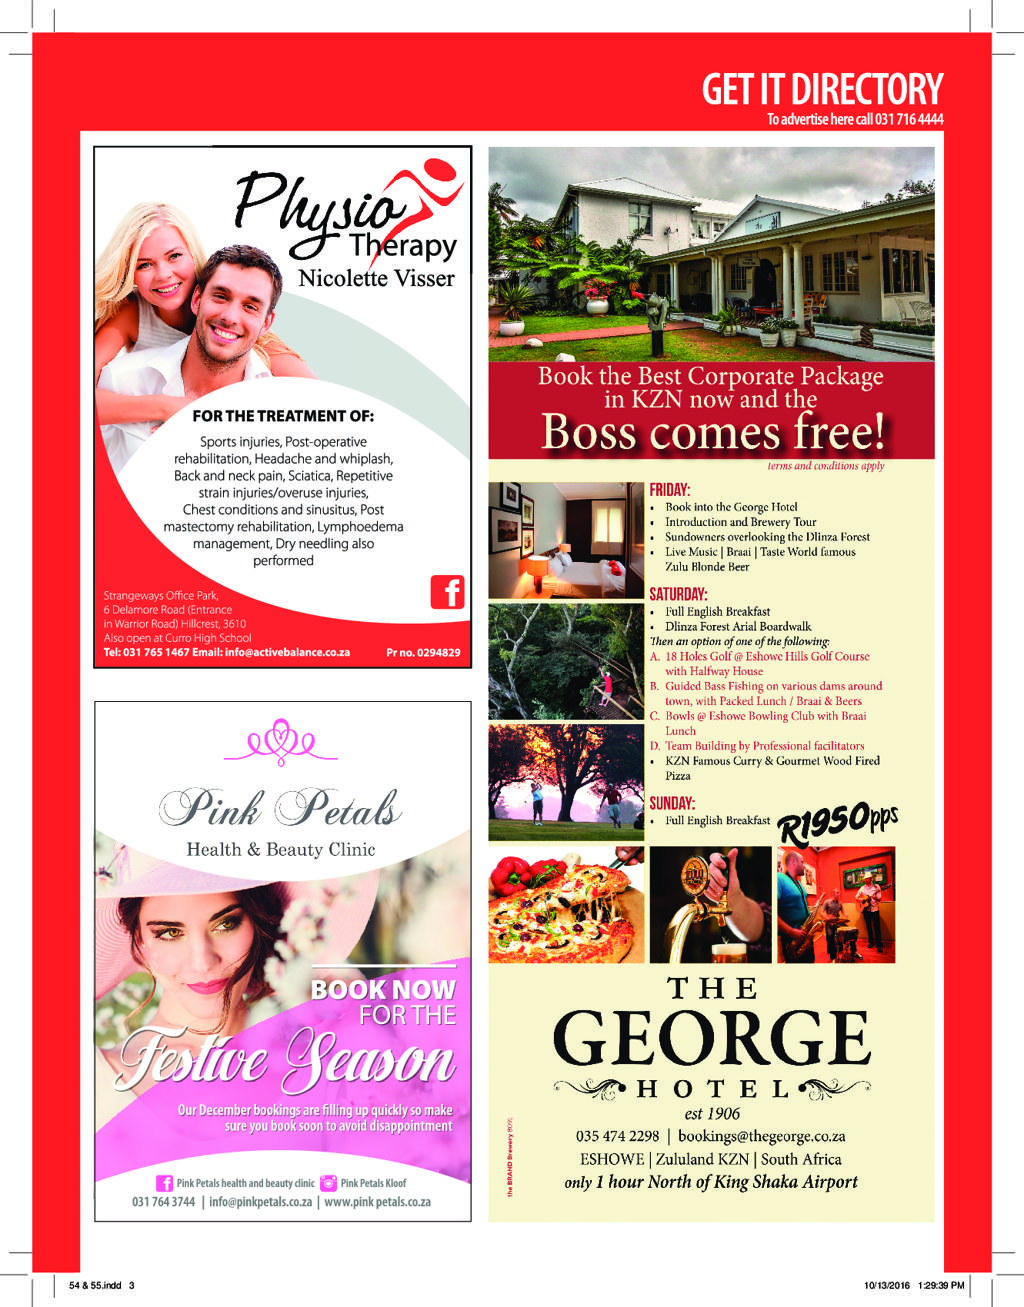 durban-get-it-magazine-november-2016-epapers-page-57